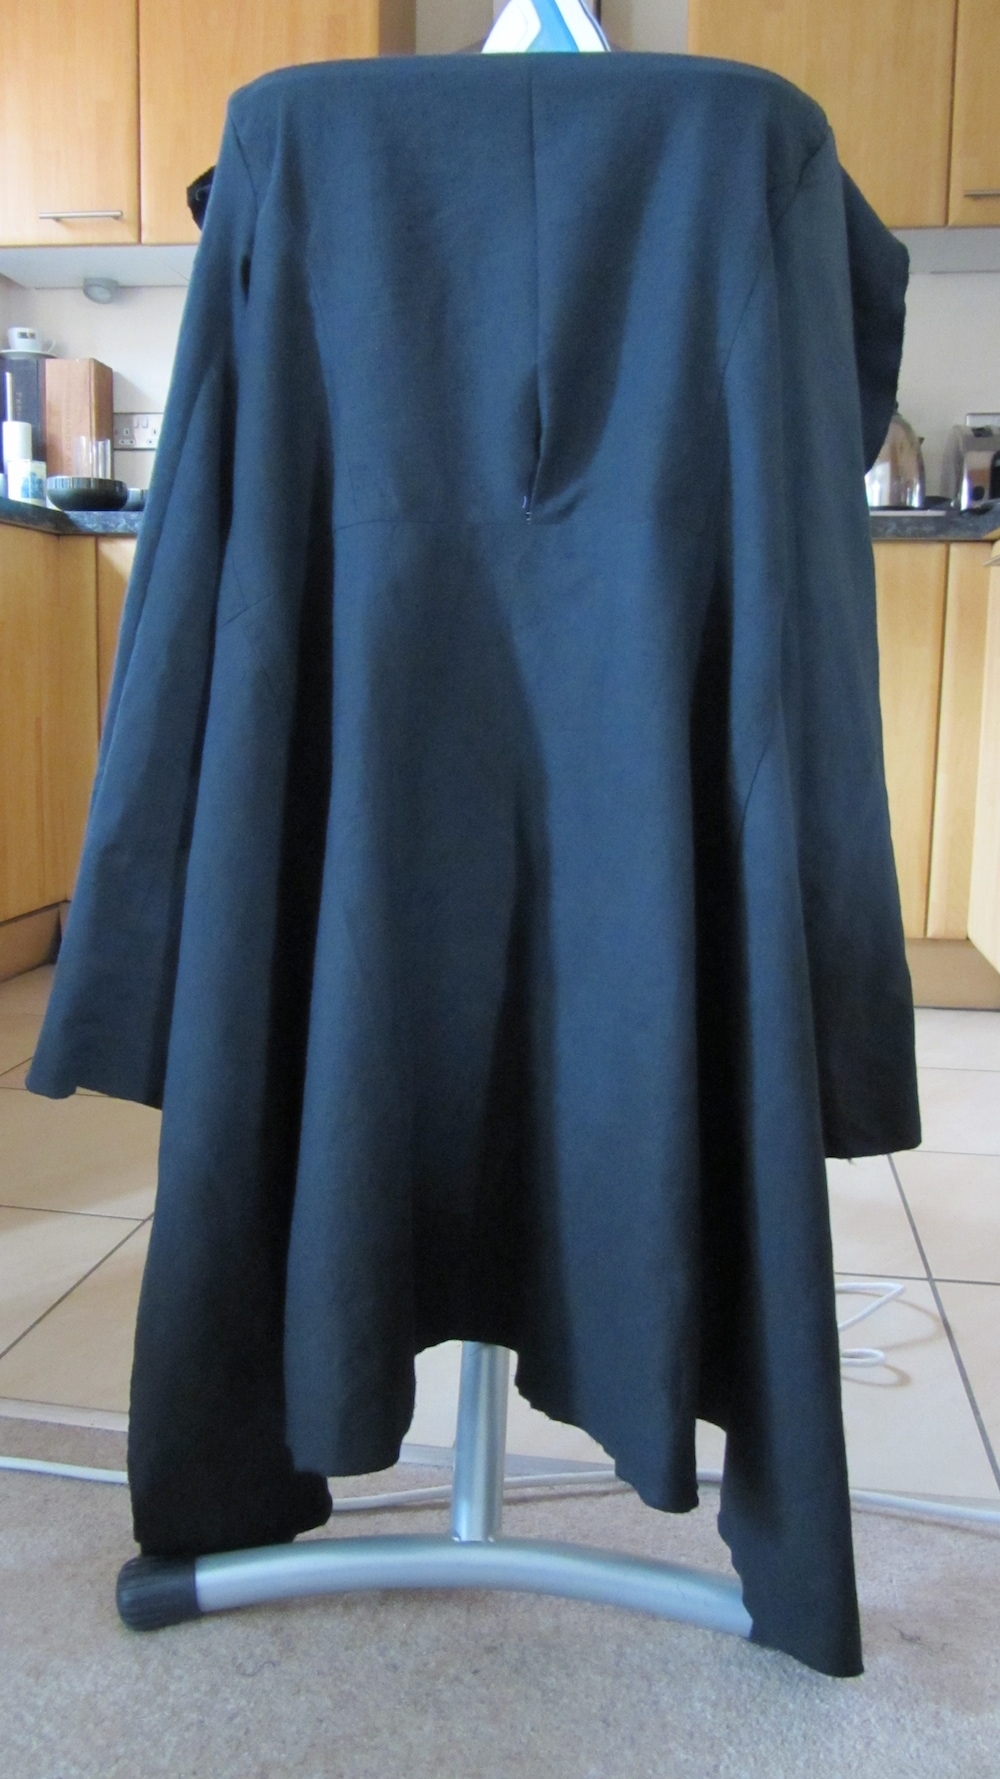 How to replace a coat lining tutorial 4.jpg